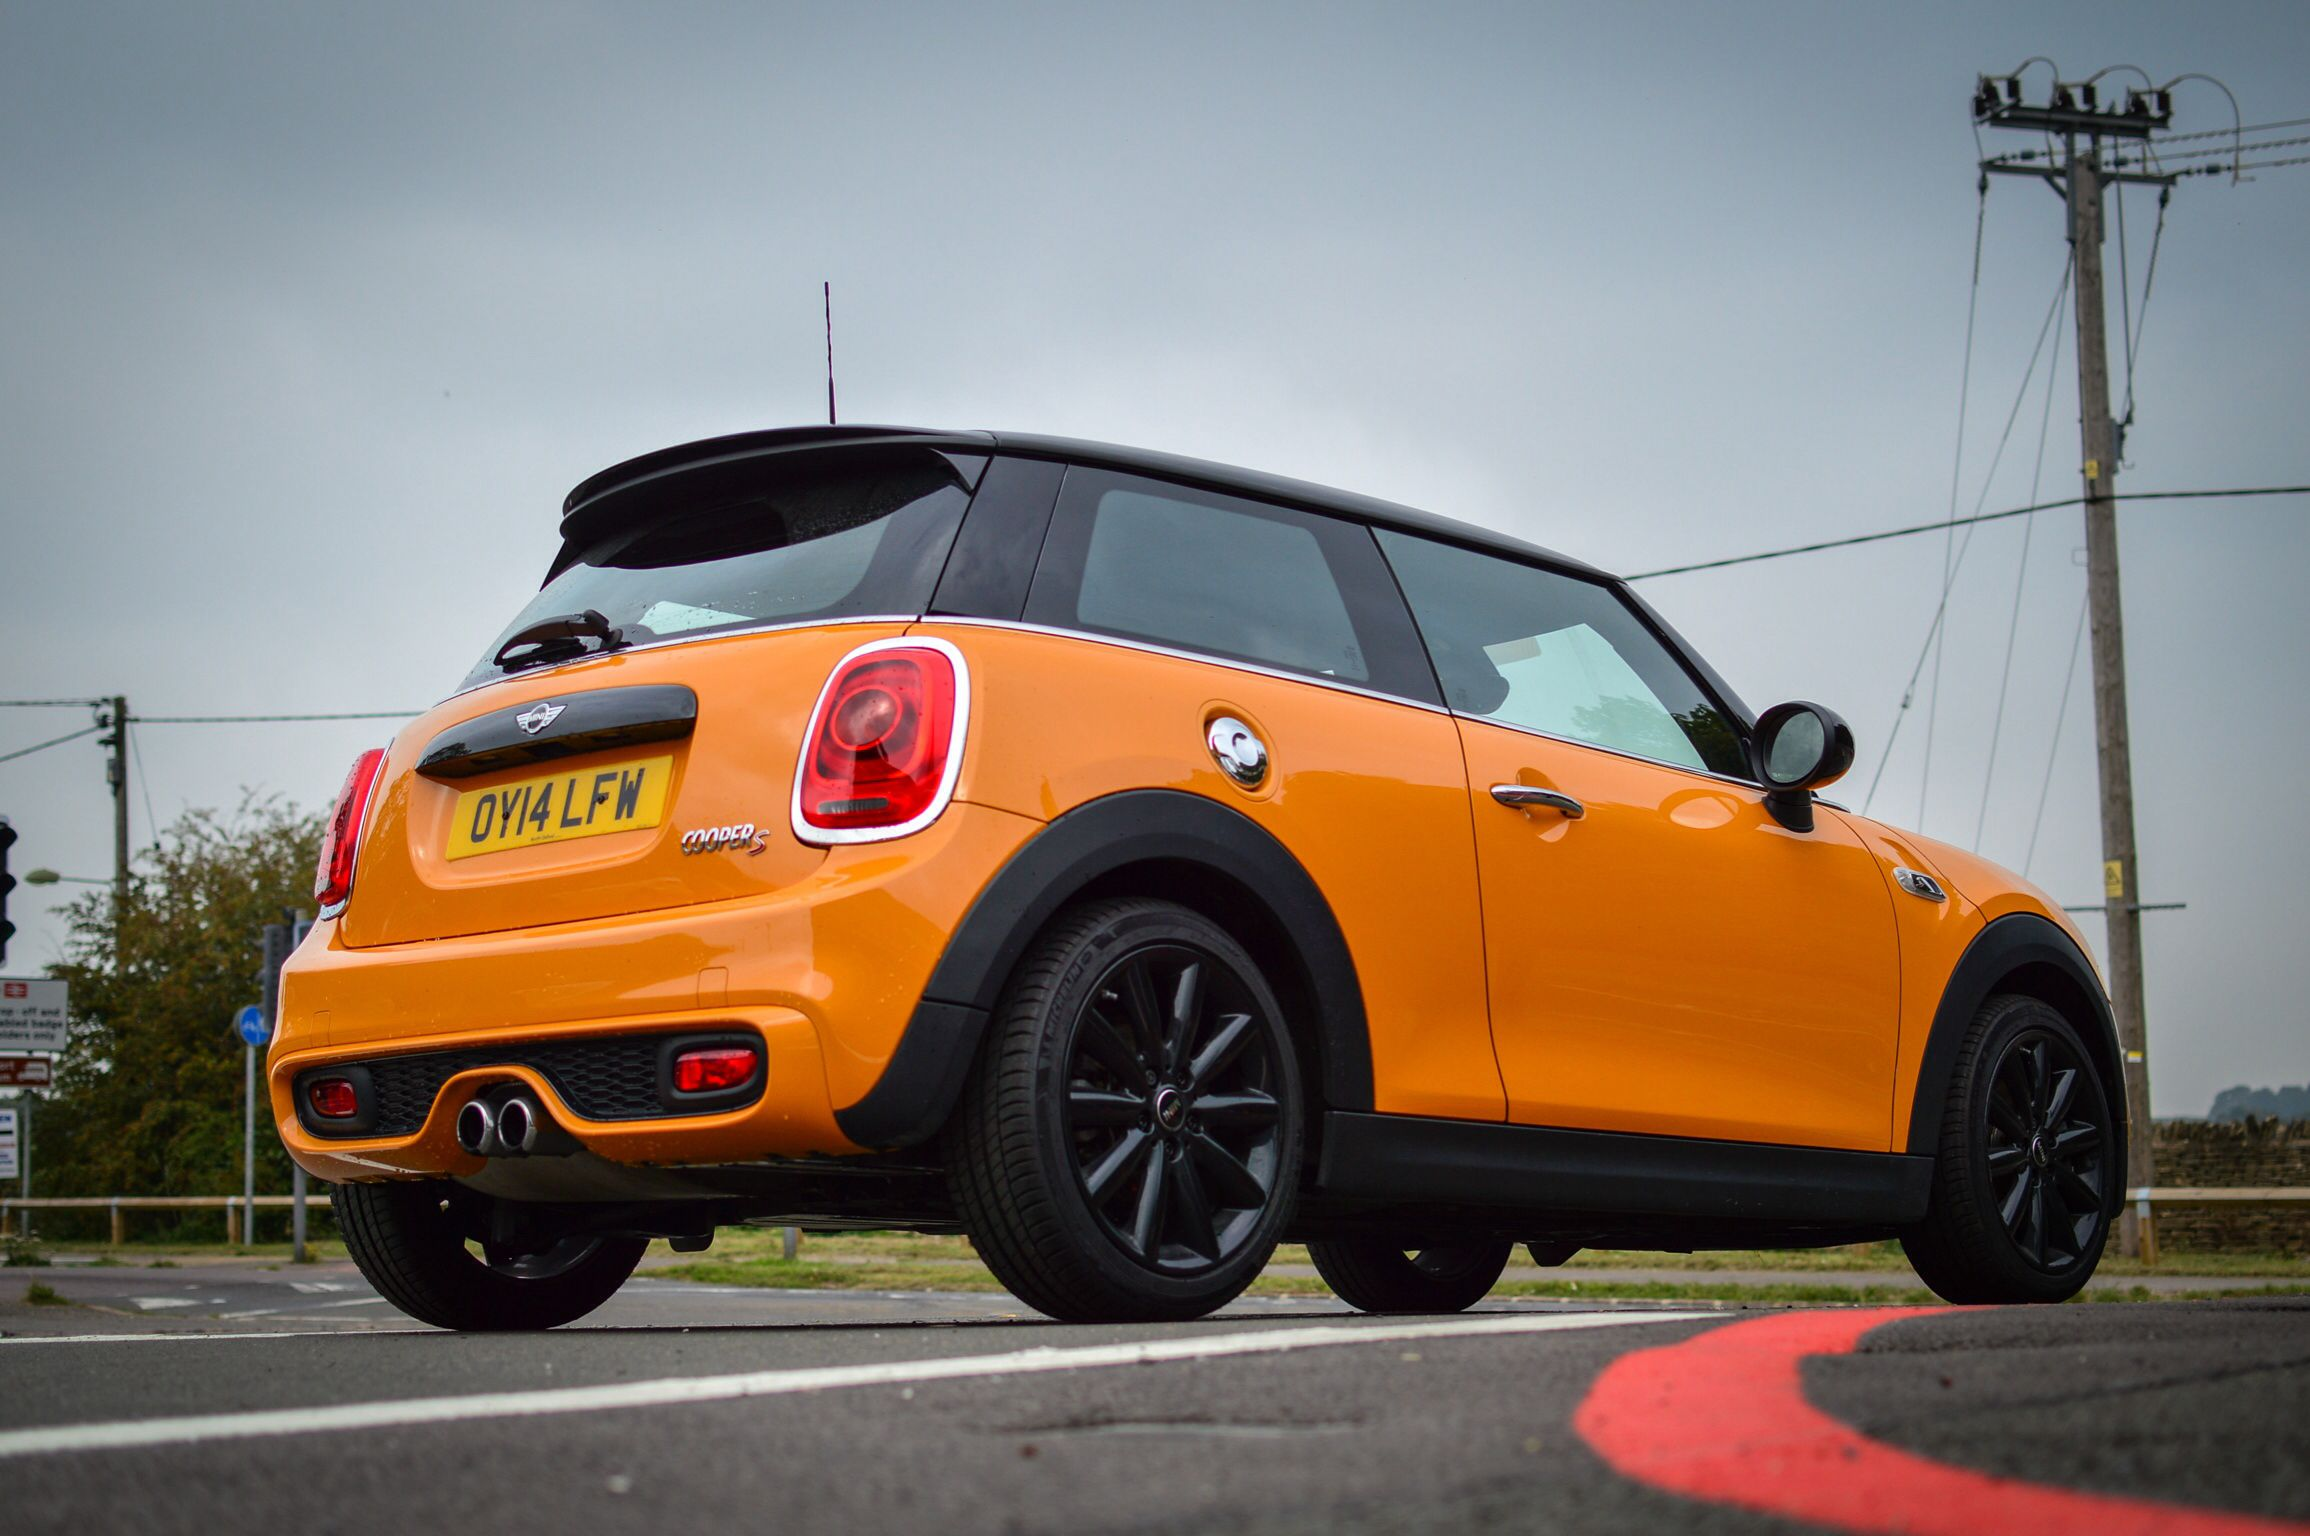 f56 mini cooper s volcanic orange cars pinterest mini cooper s mini and cars. Black Bedroom Furniture Sets. Home Design Ideas